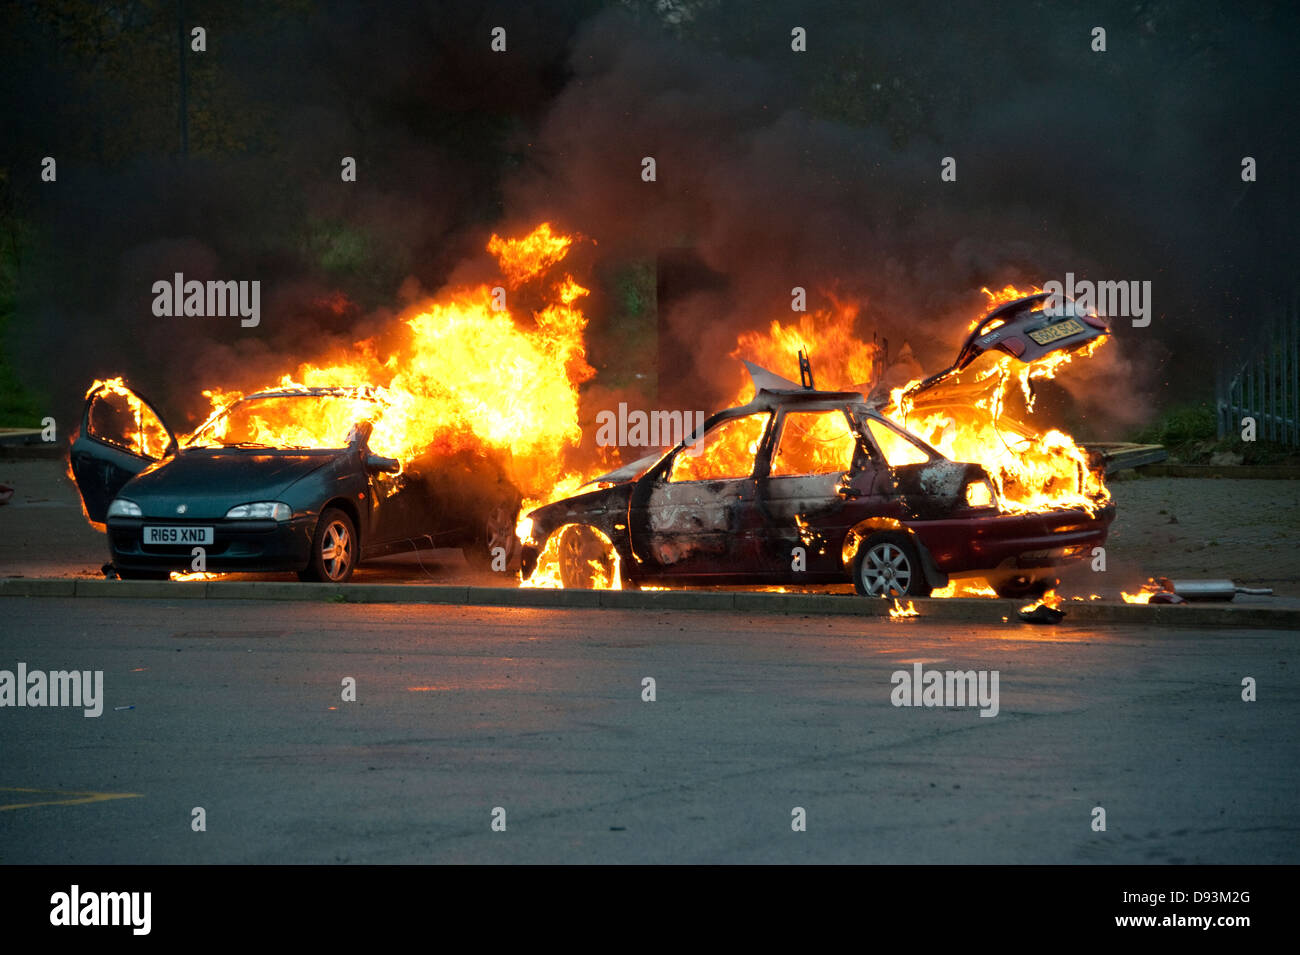 Two Cars On Fire Car Firefighter Stock Photo 57244616 Alamy